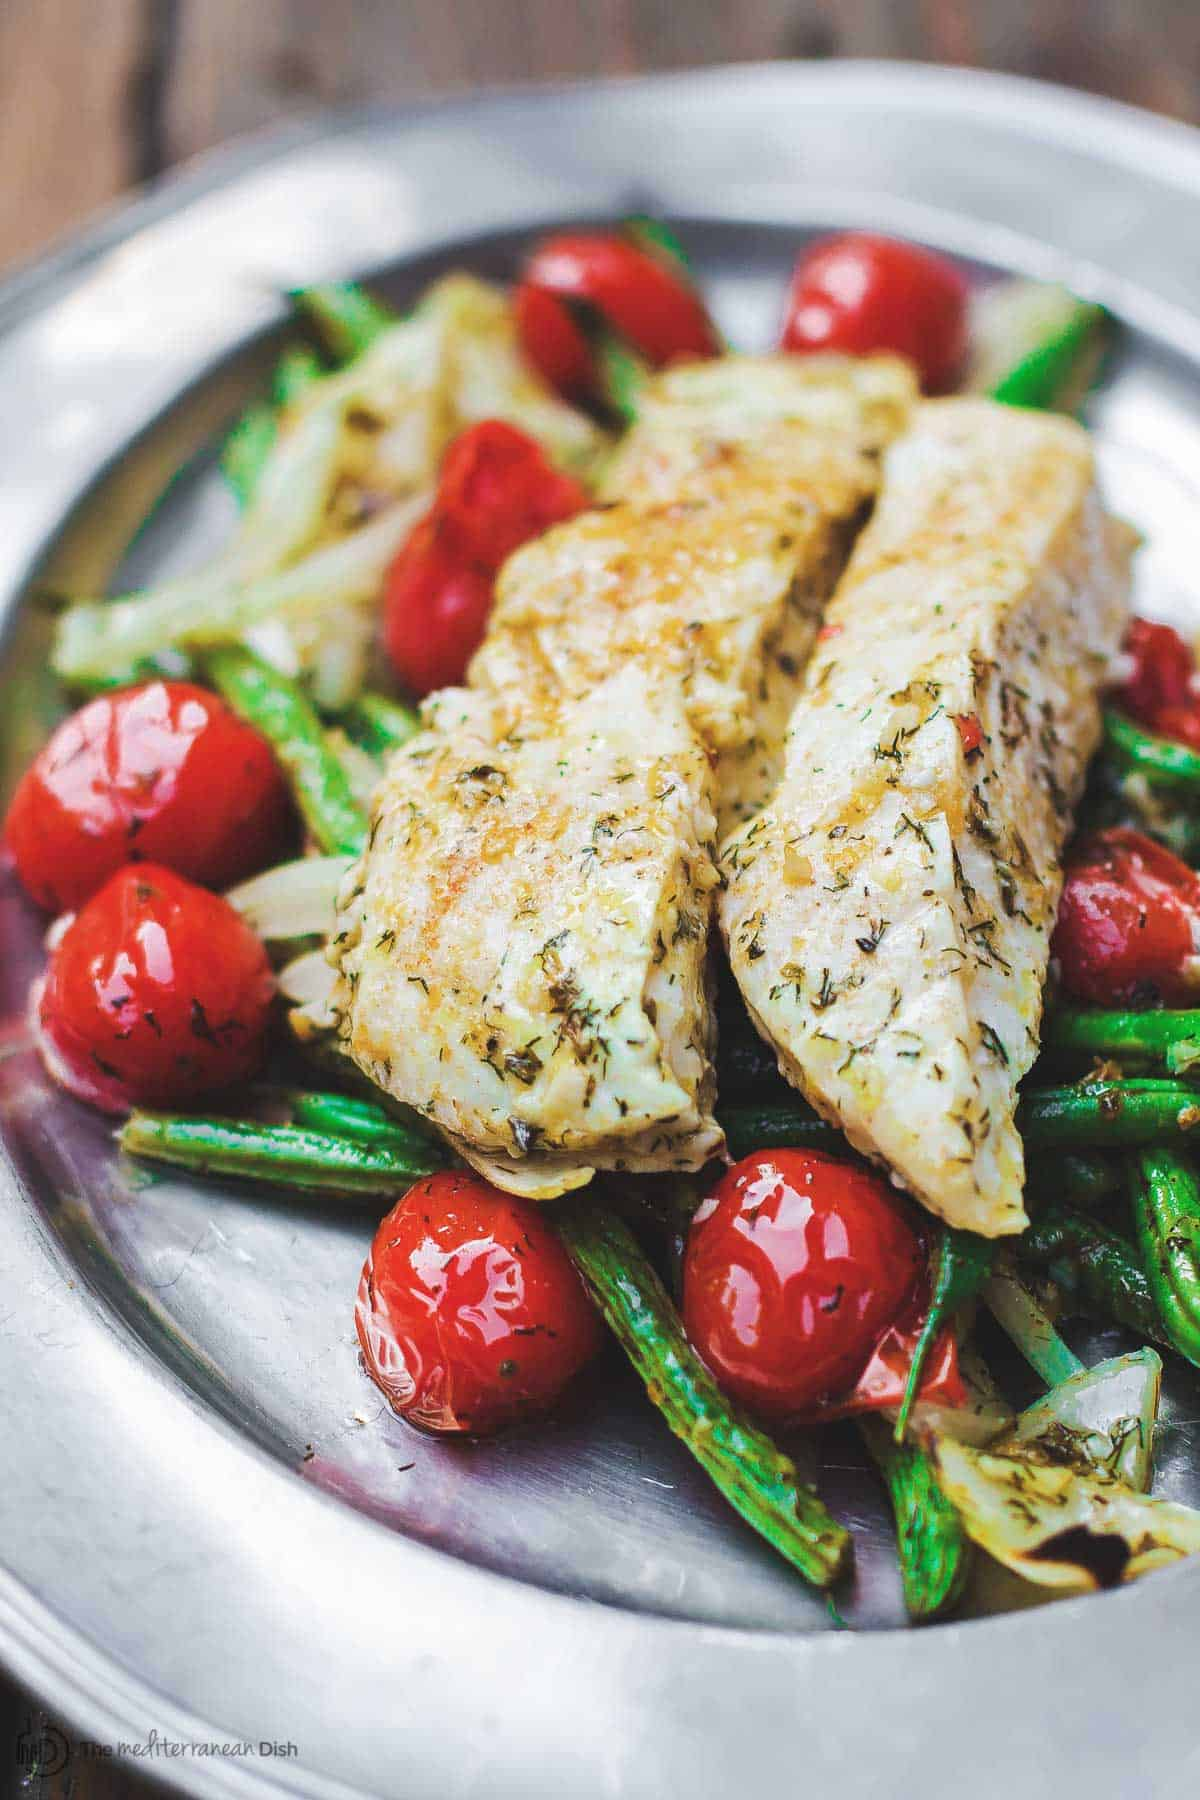 Baked Halibut Served with Cherry Tomatoes, Green Beans and Onions